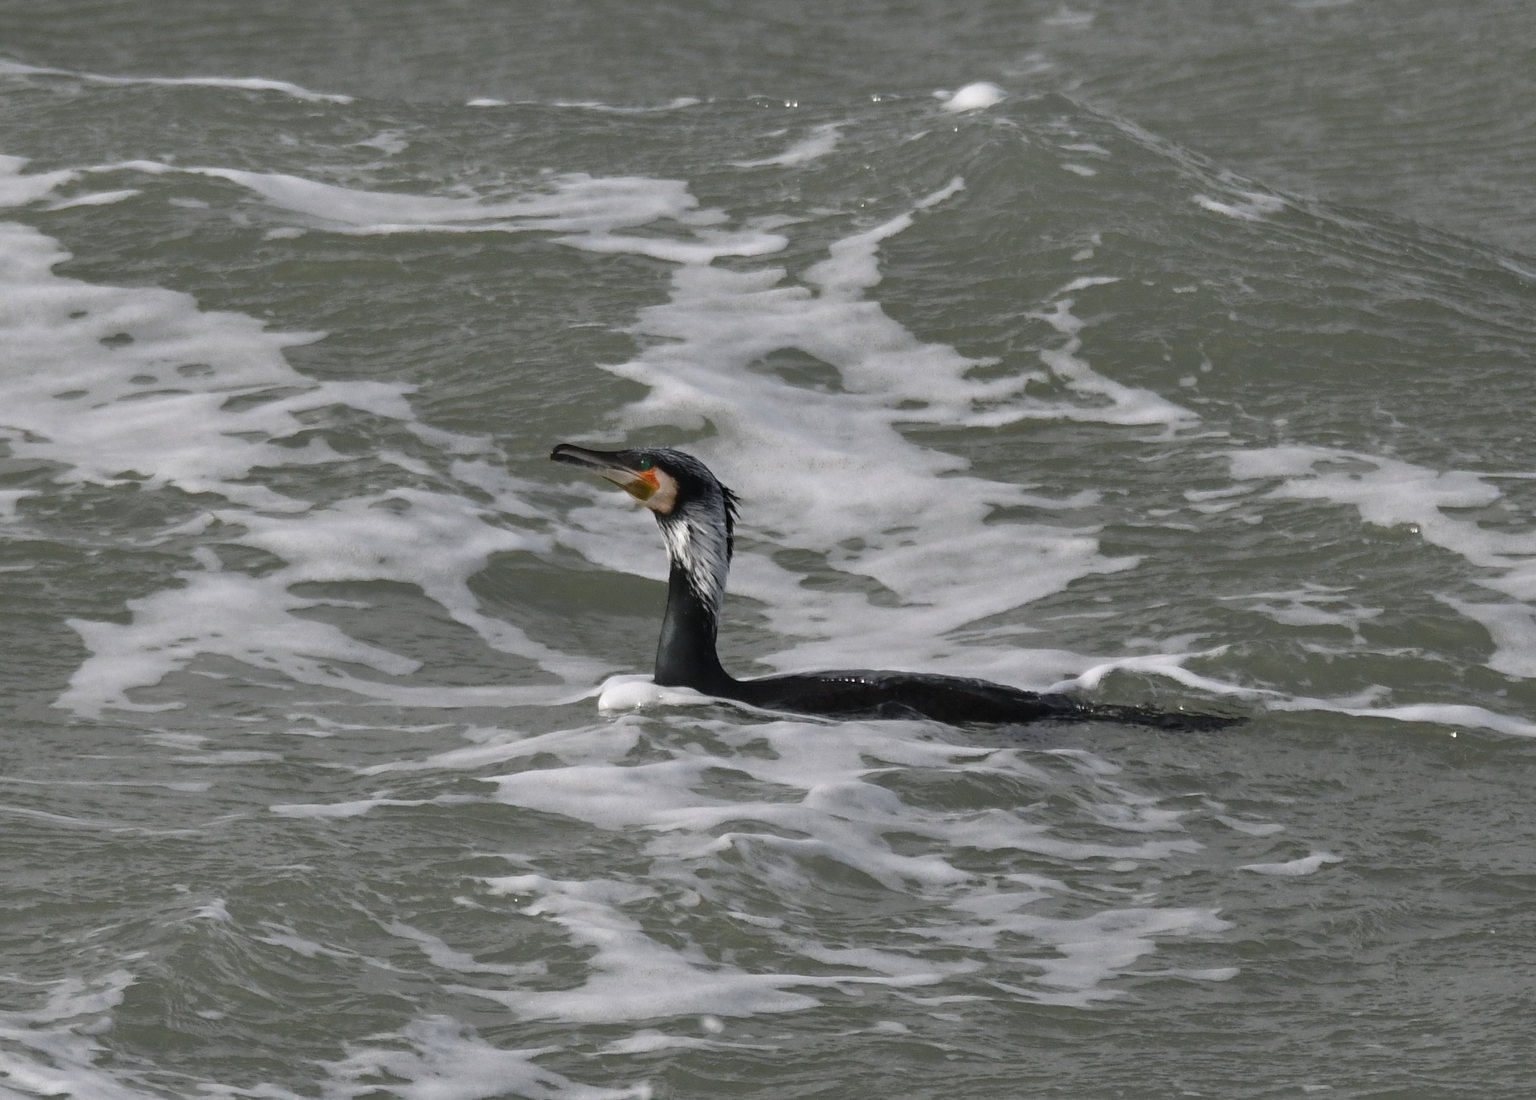 Aalscholver (Phalacrocorax carbo).